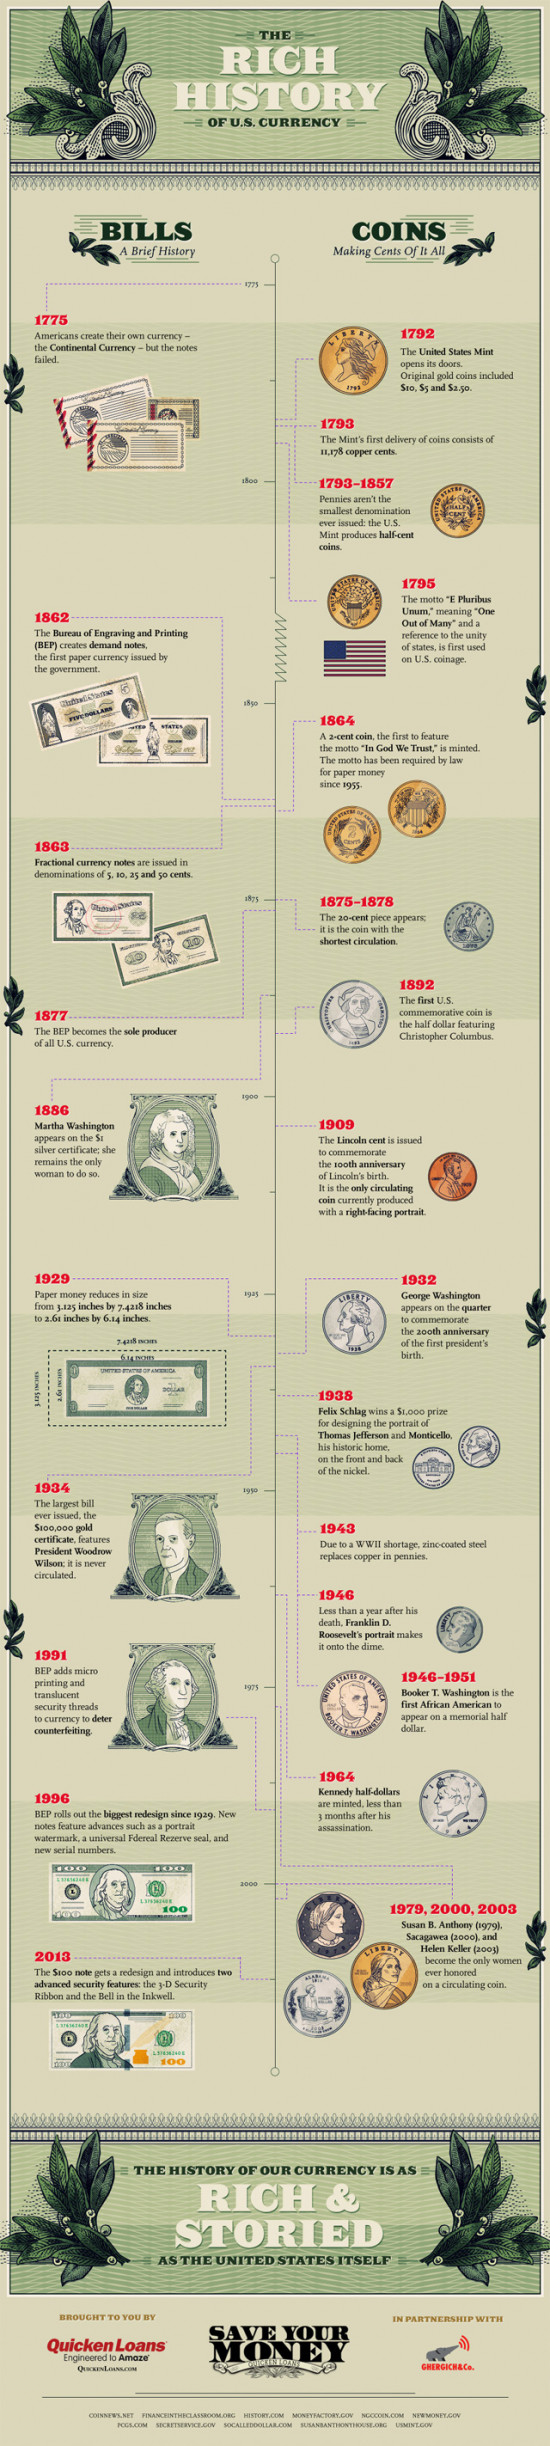 History of U.S. Money